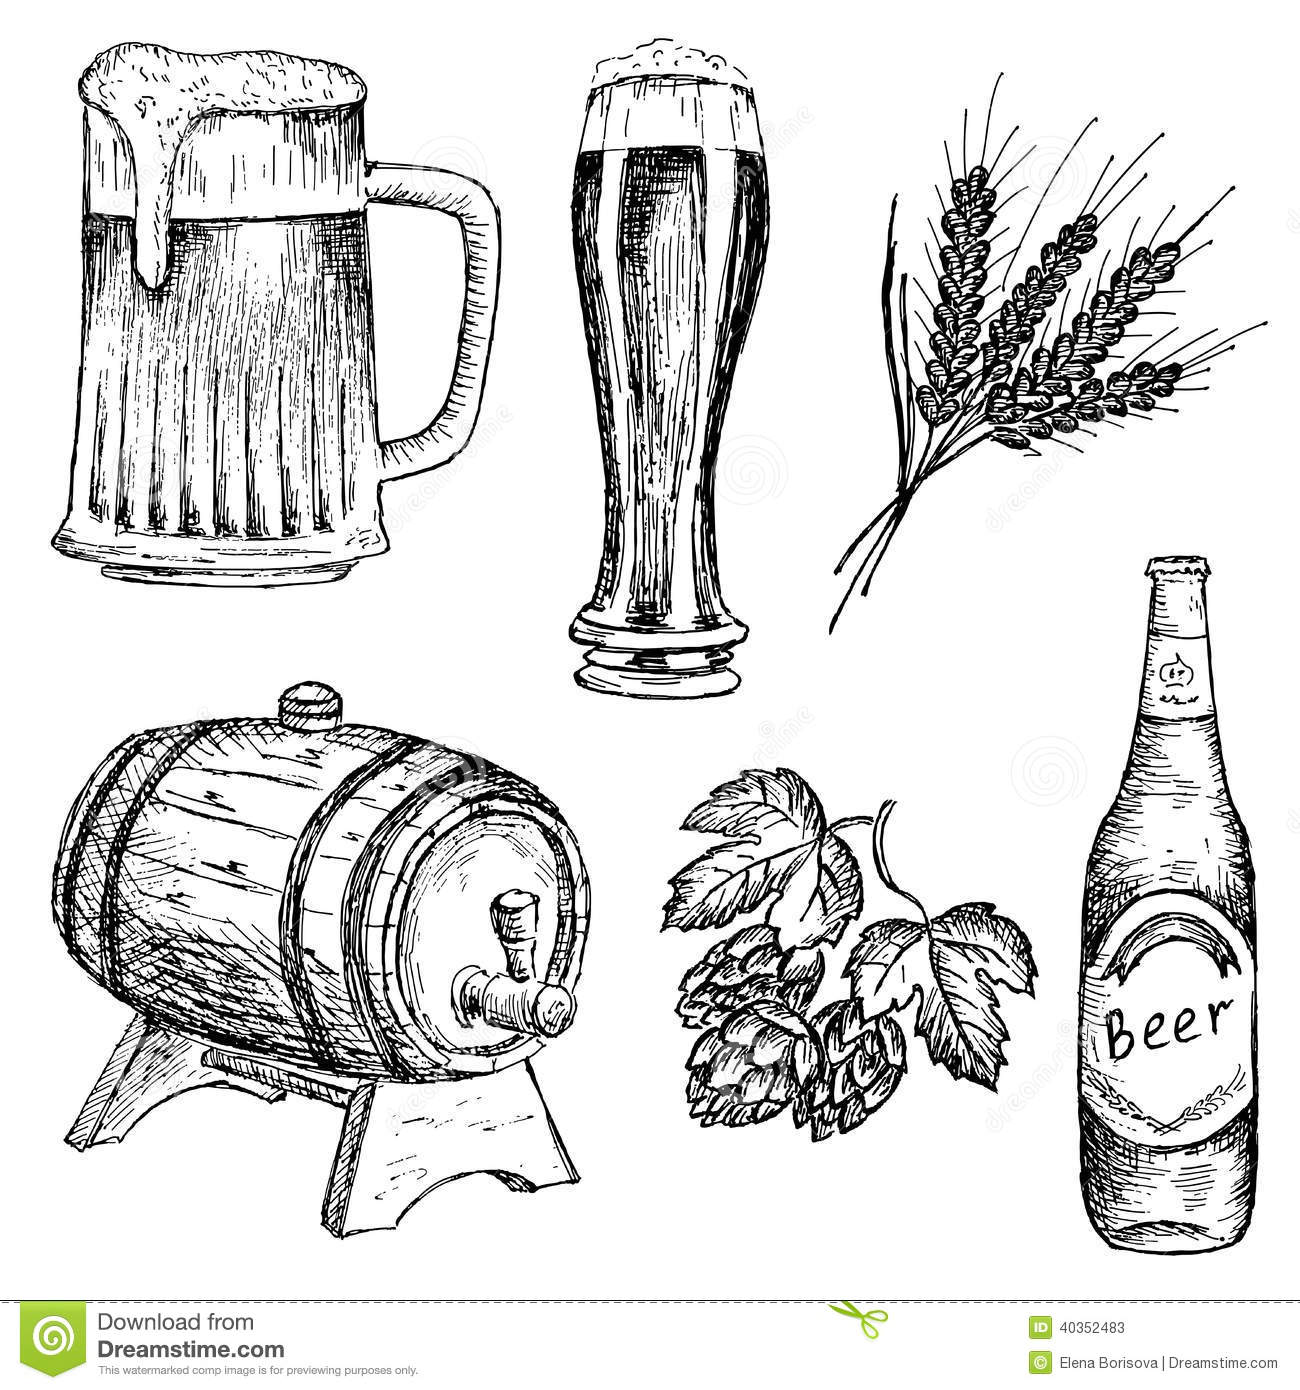 Bitter beer. hand drawing set of vector sketches.